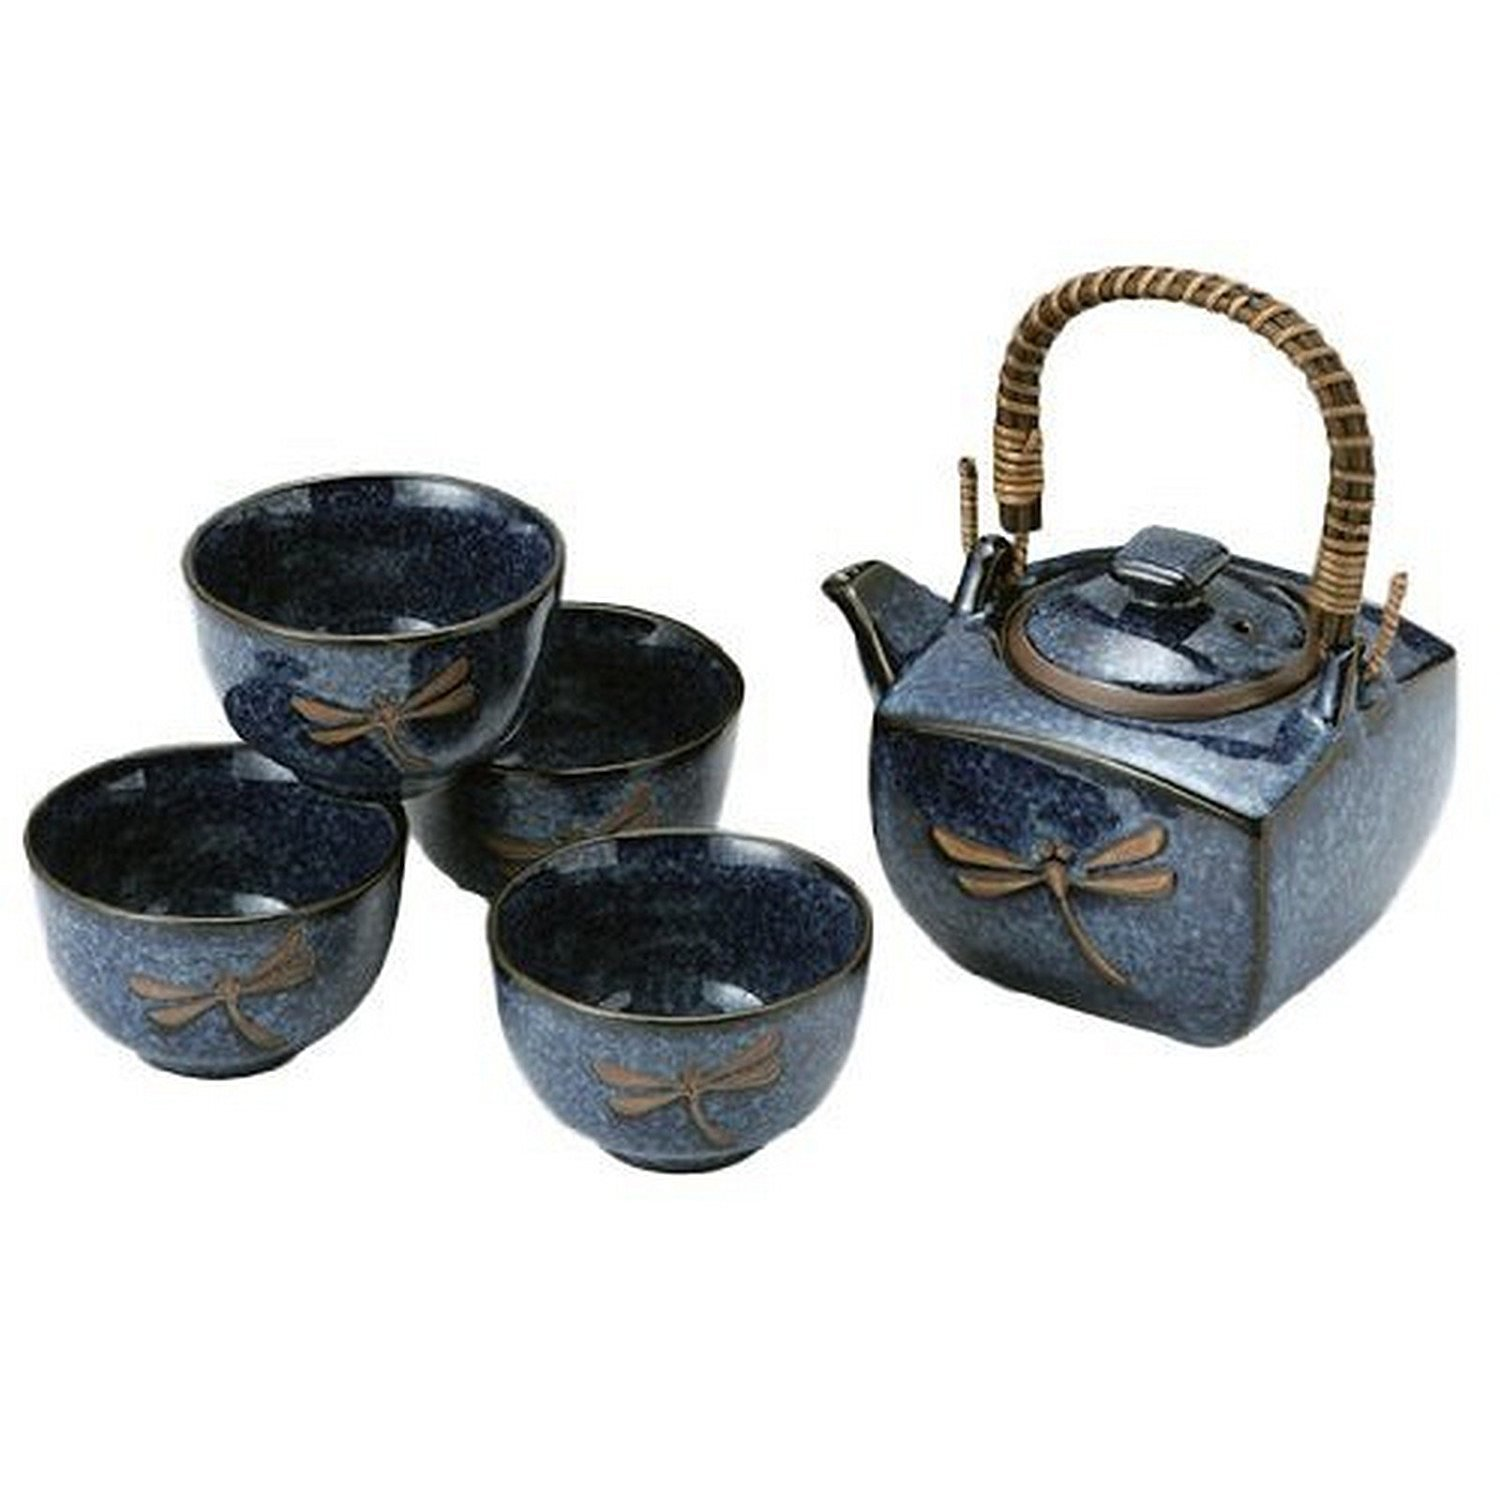 JapanBargain 3329-J Dragonfly Porcelain Tea Set, Dragonfly-5pc, Blue